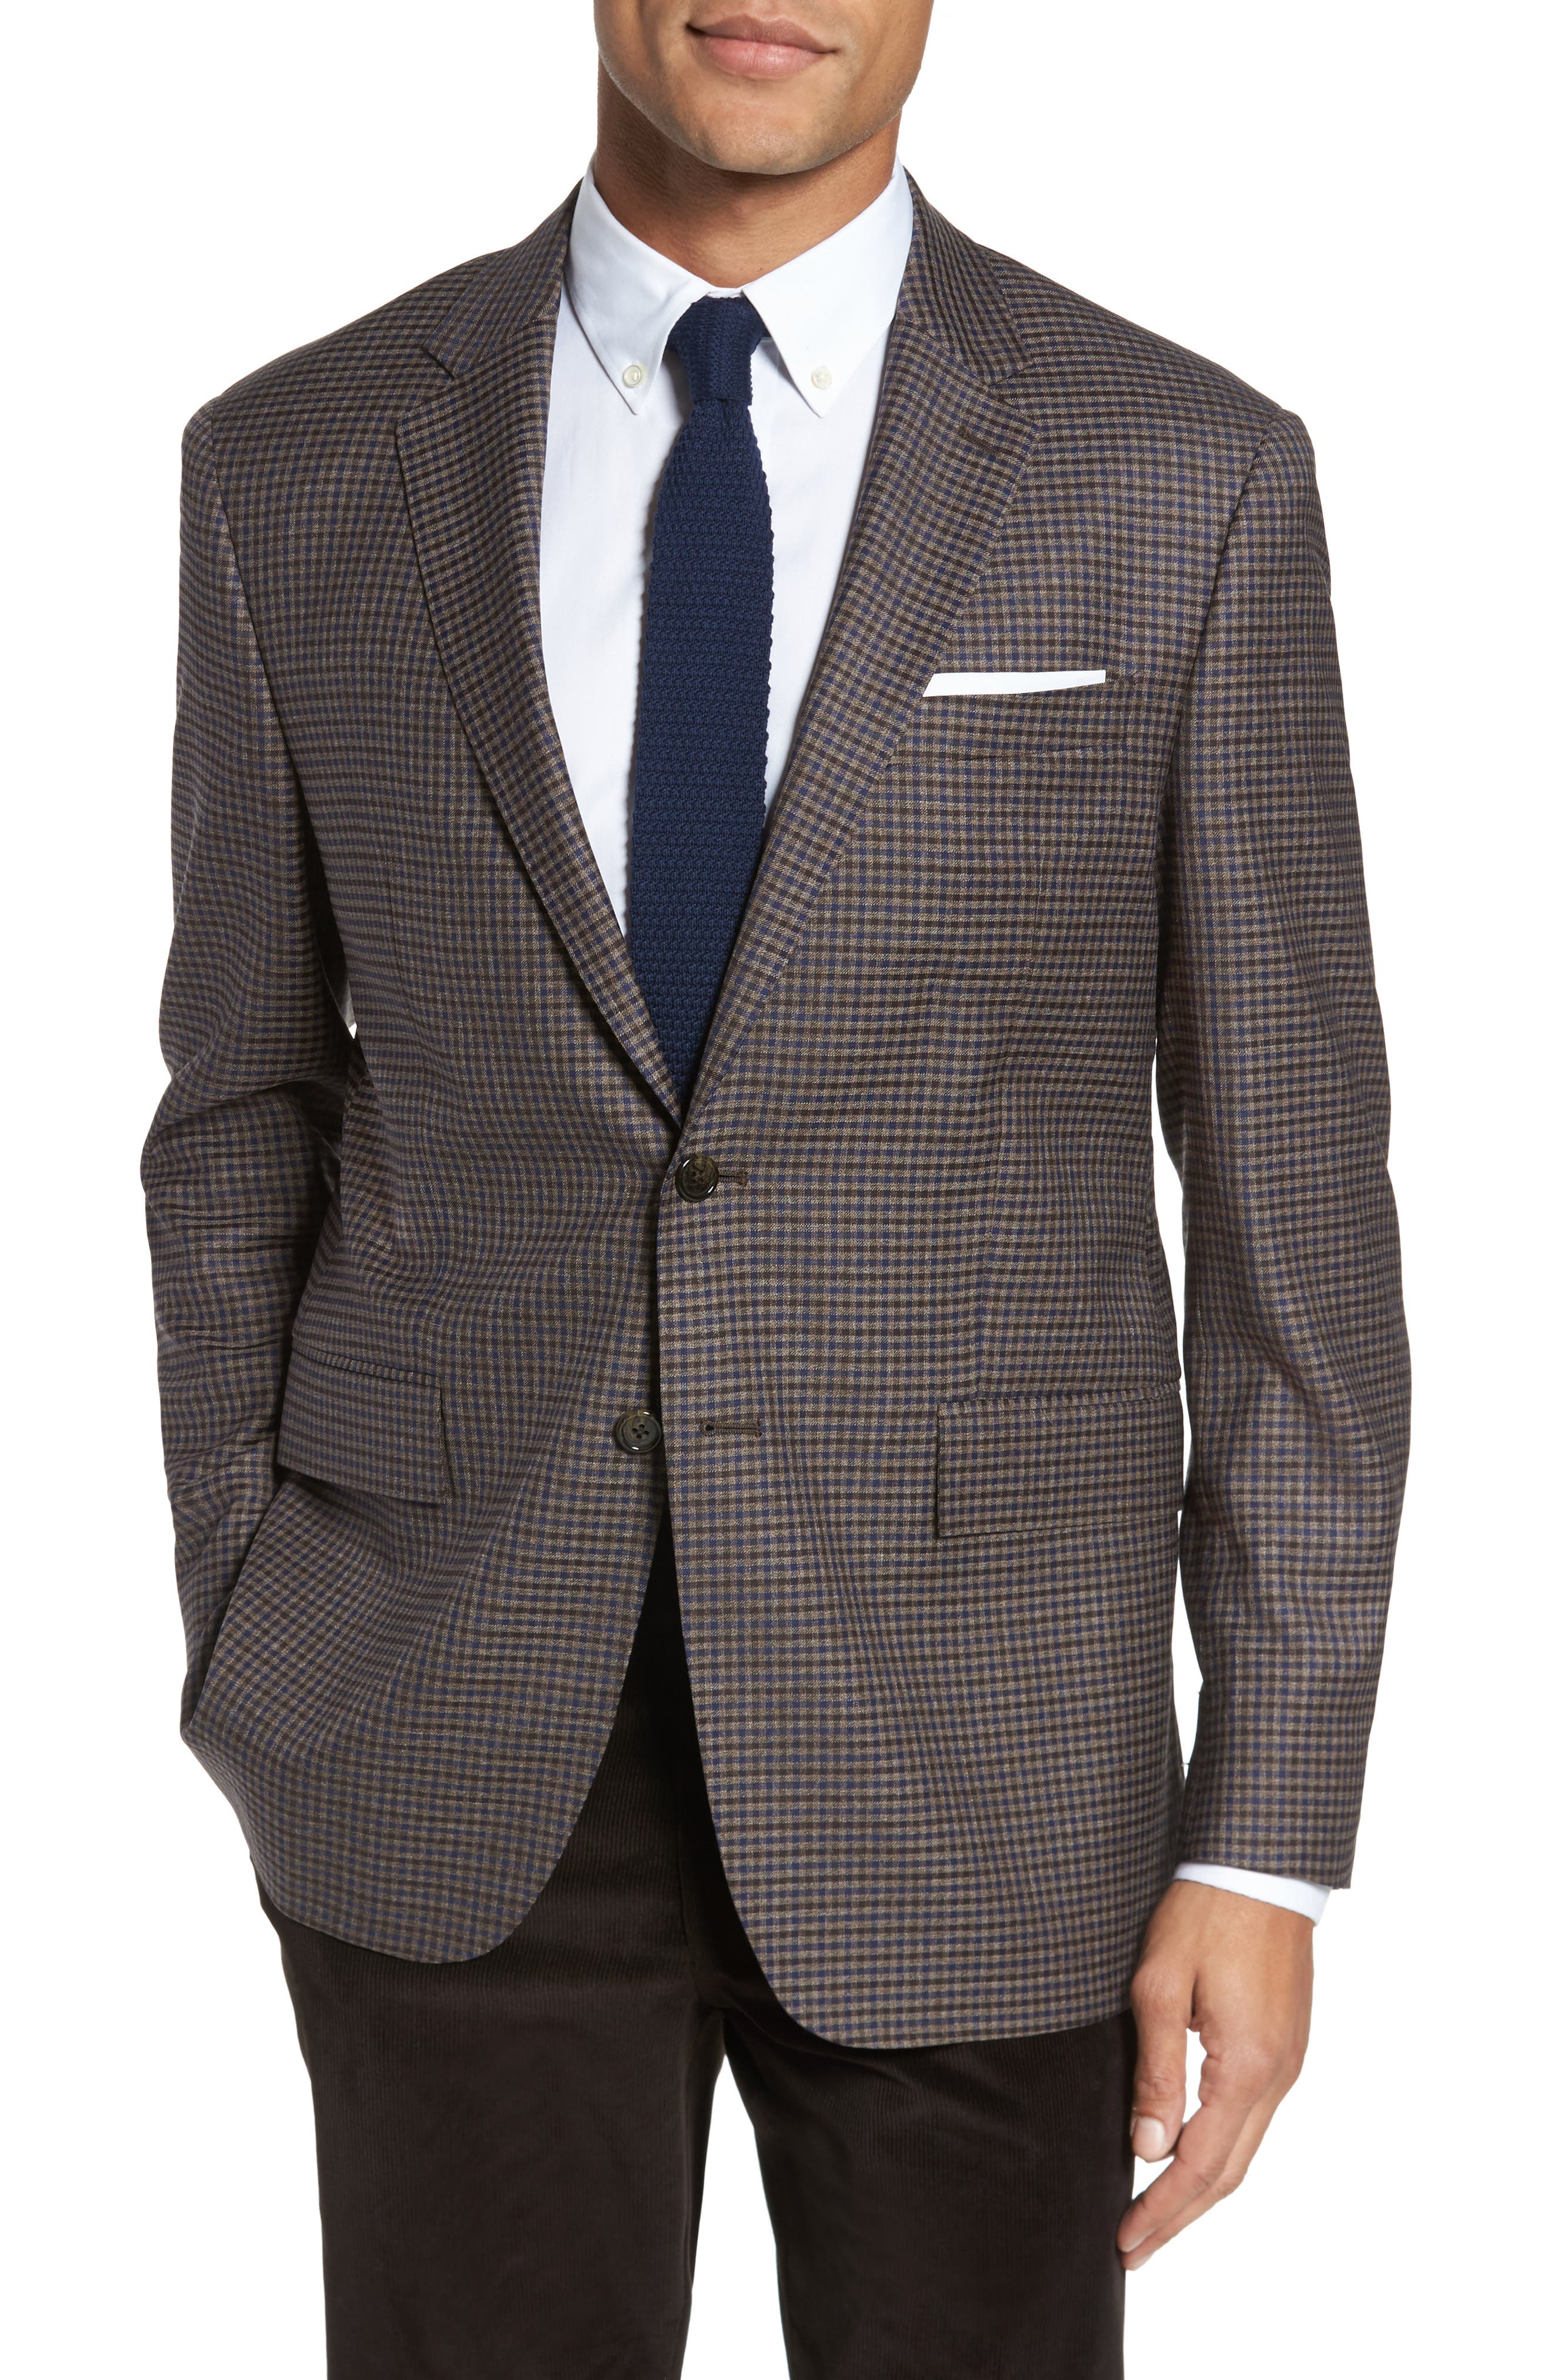 Todd Snyder White Label Trim Fit Check Wool Sport Coat